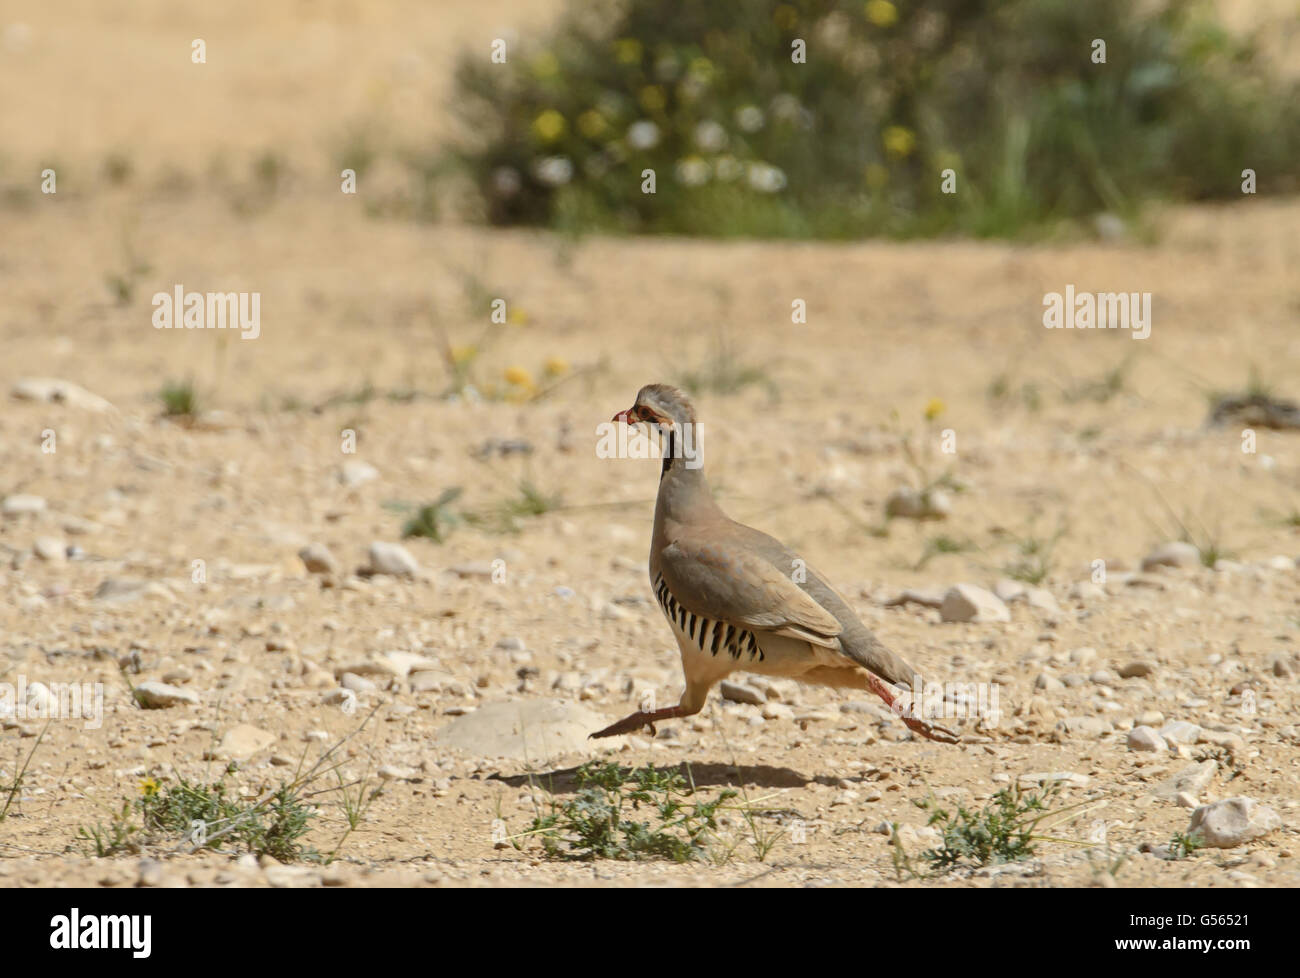 Chukar Partridge (Alectoris chukar) adult, running in desert Stock